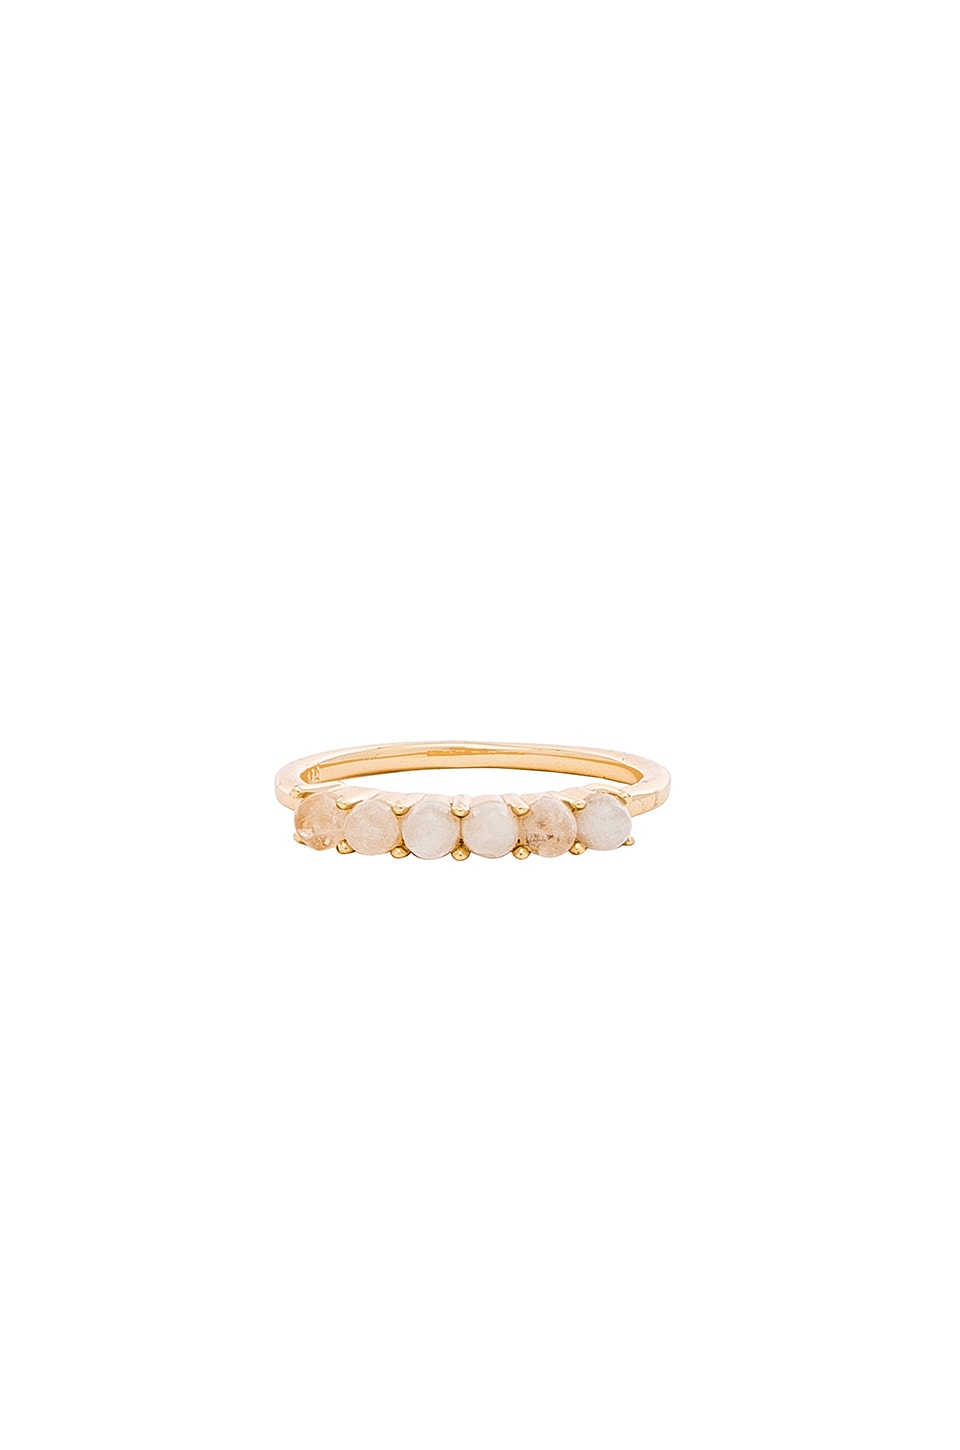 MELANIE AULD Stone Band Ring in Metallic Gold